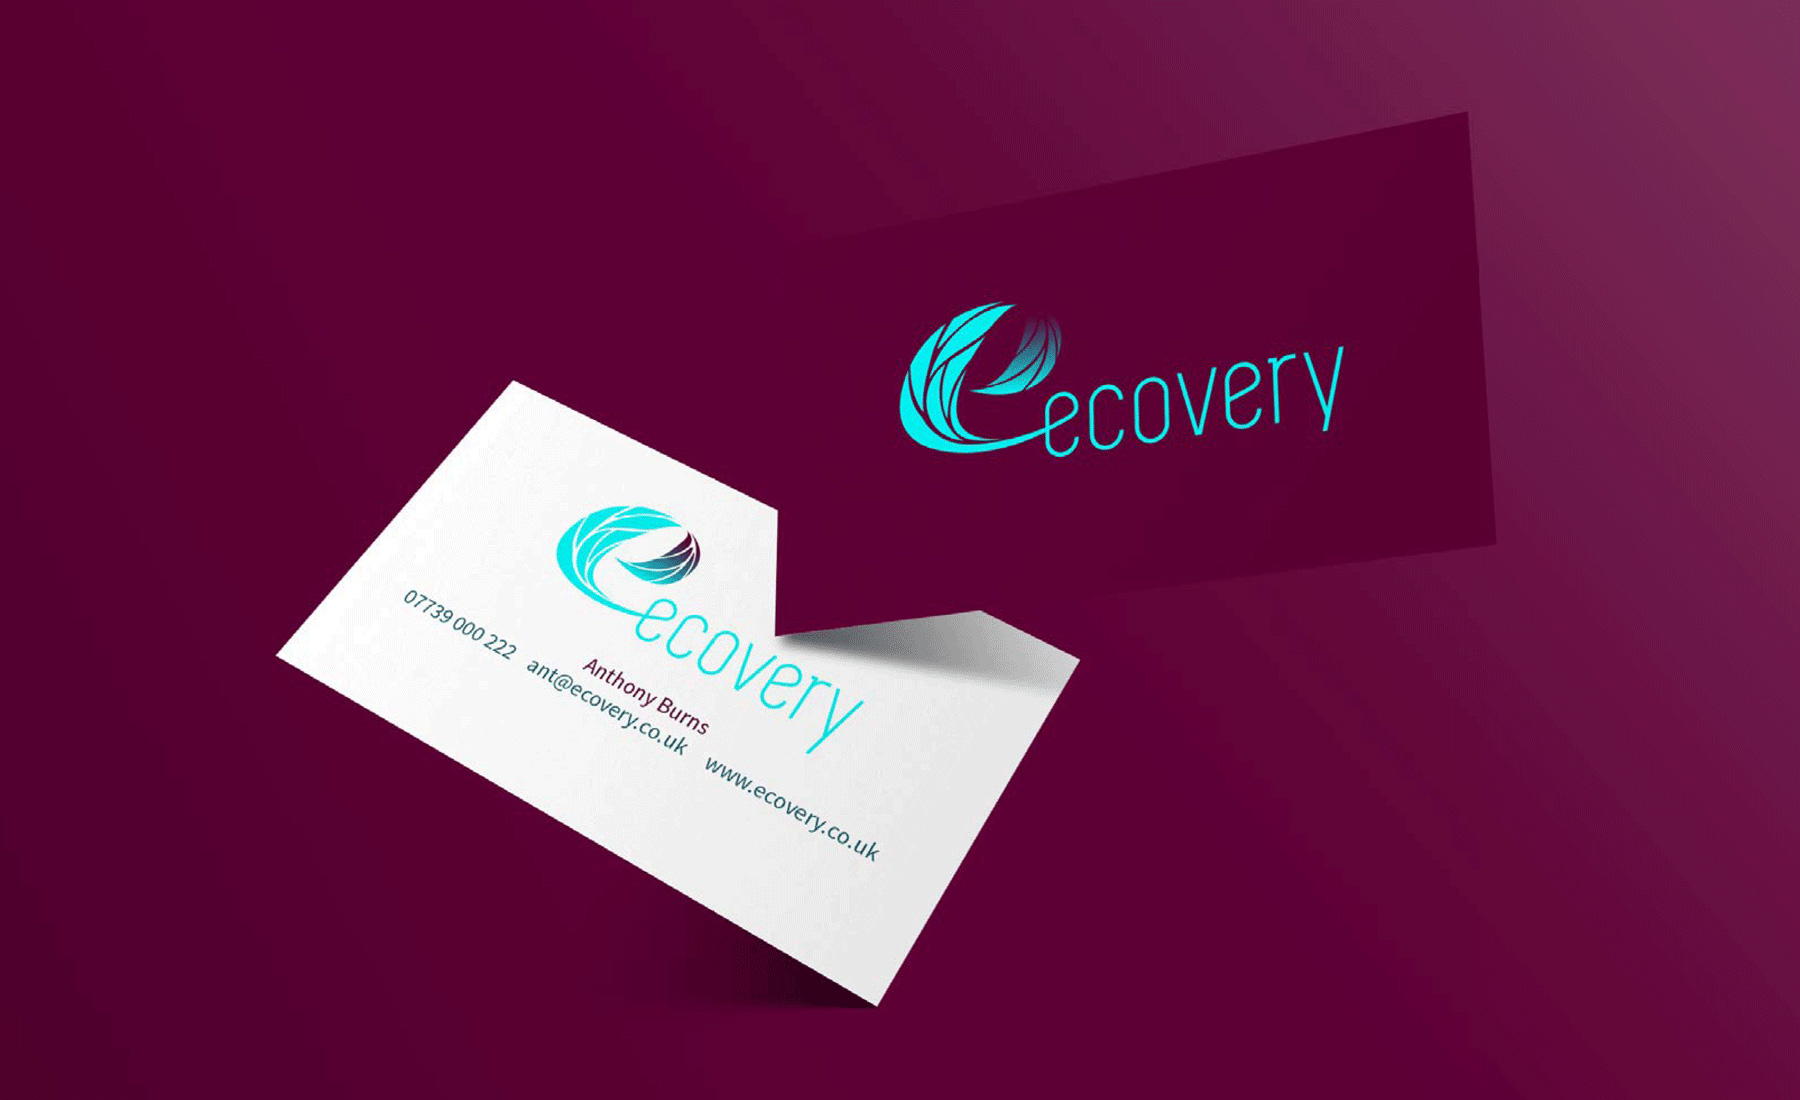 Ecovery_web_bus_card